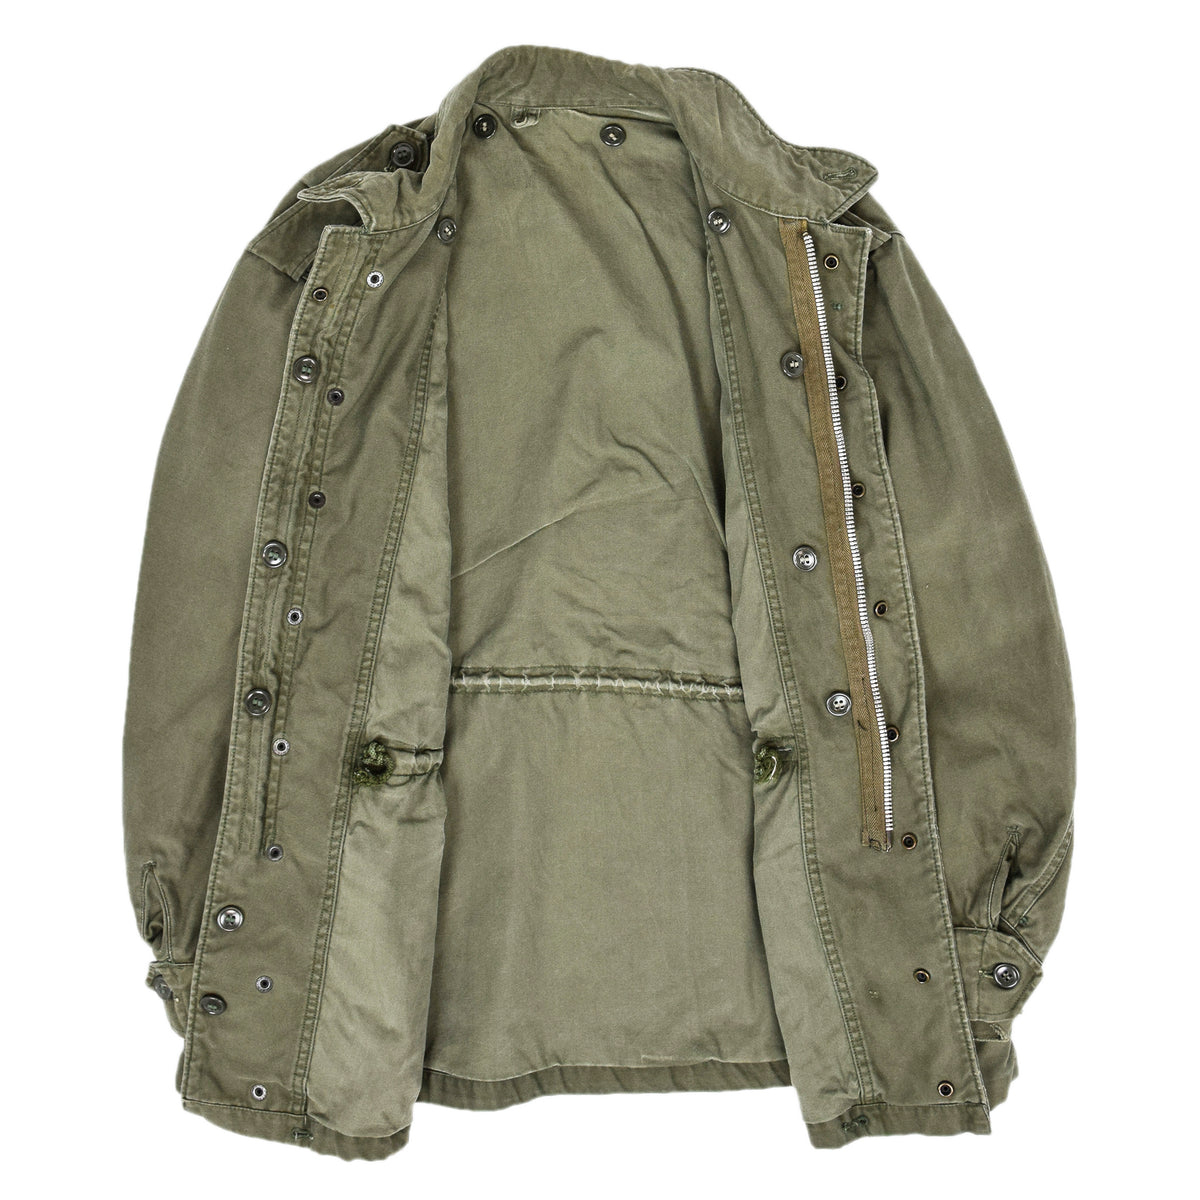 Vintage 50s M-1951 Korean War US Army Field Jacket OG-107 Olive Green M internal